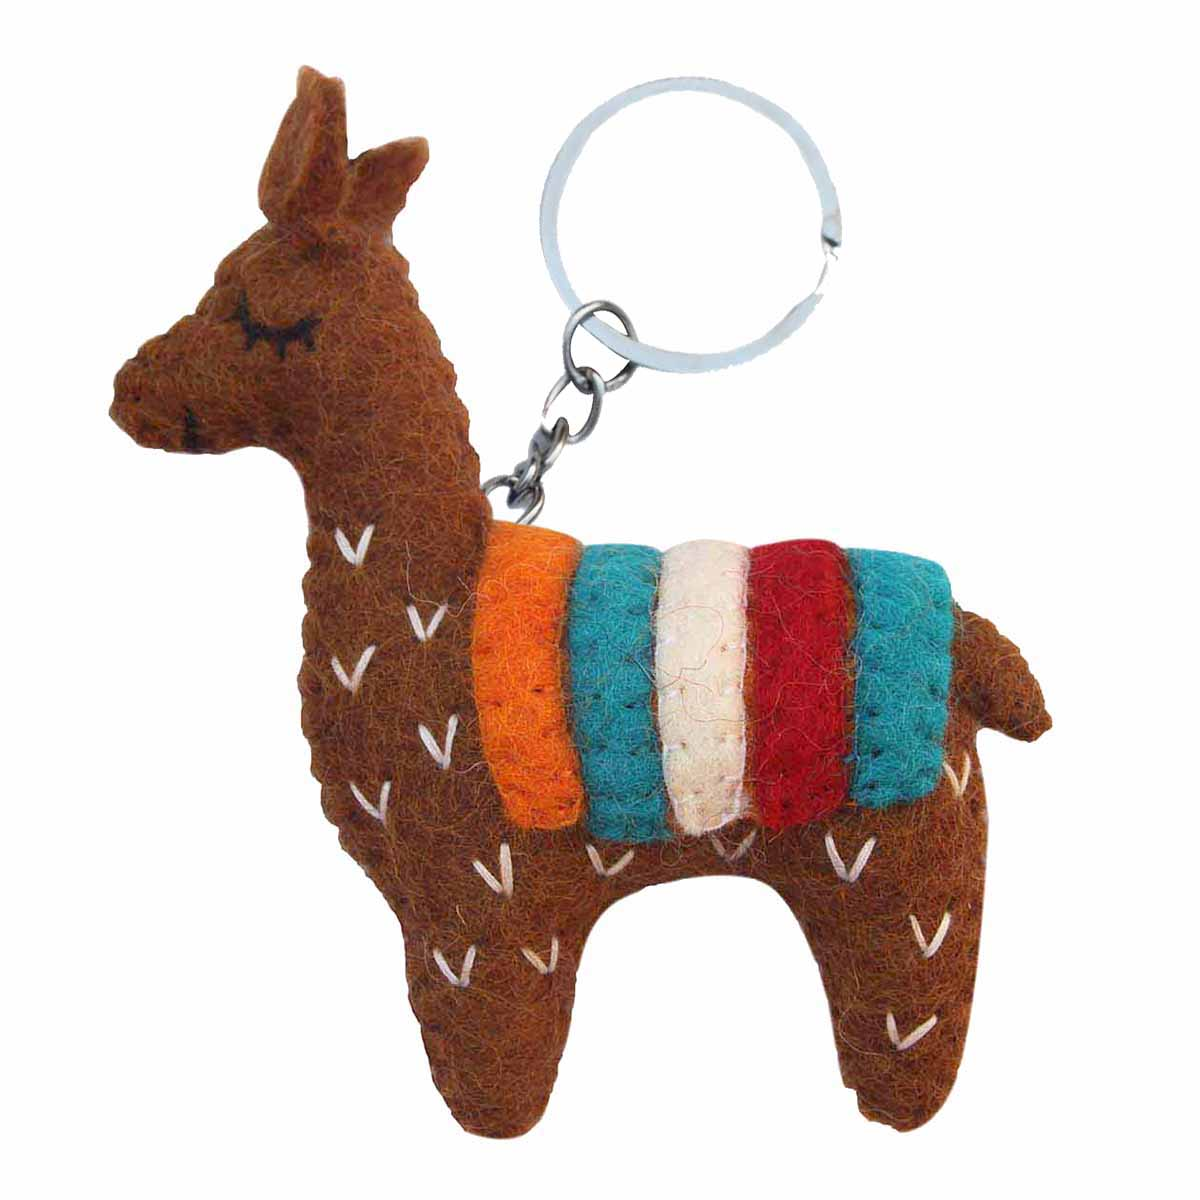 Hand Crafted Felt from Nepal: Keychain, Brown Llama